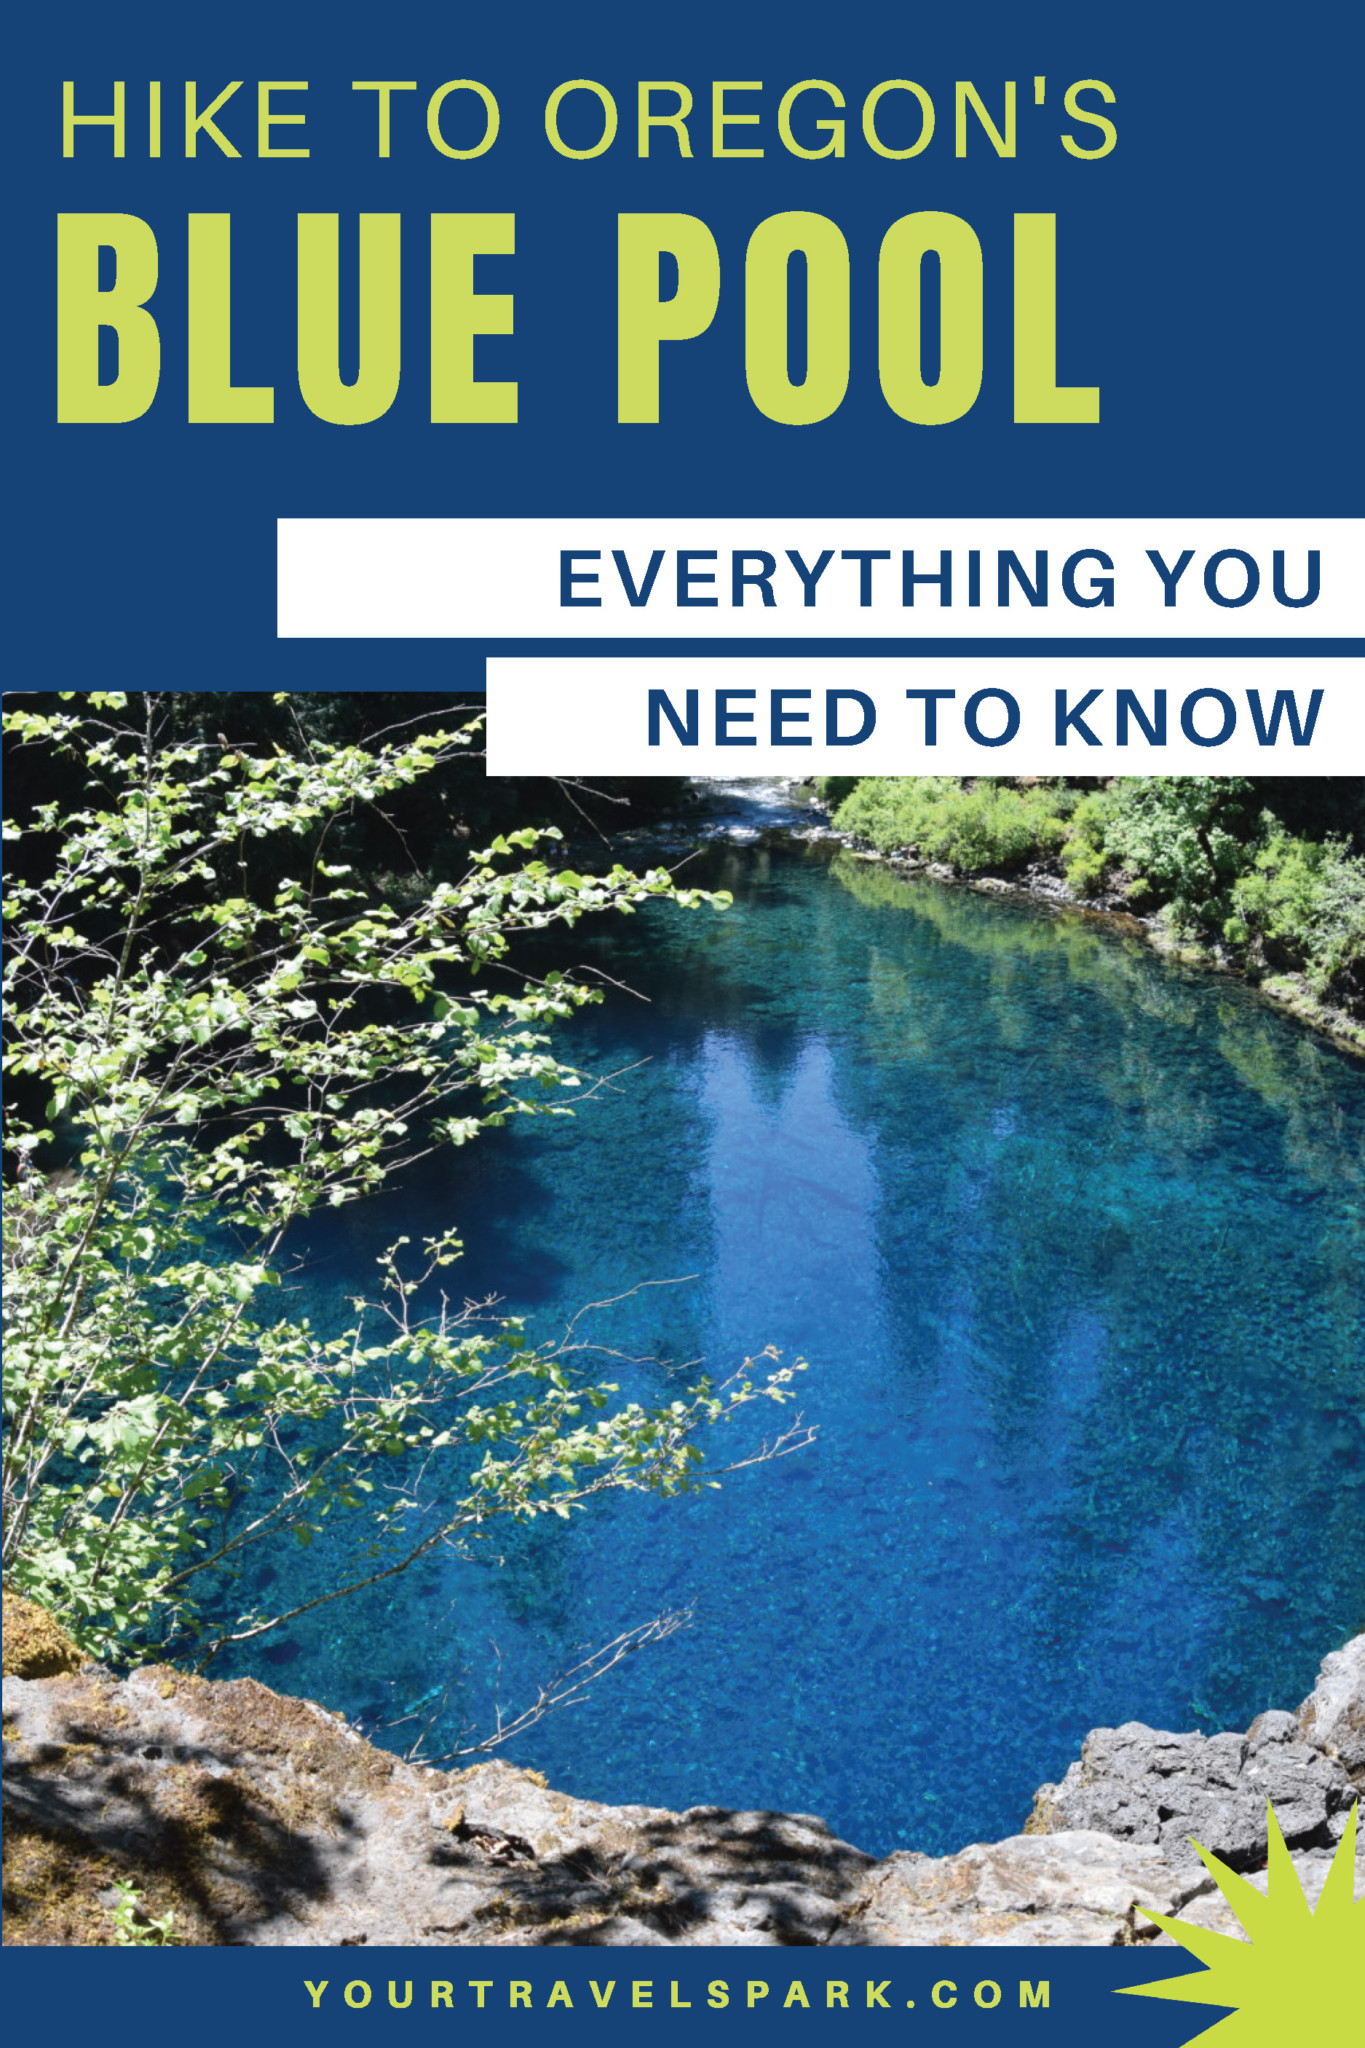 Tamolitch Blue Pool in Oregon is a beautiful destination and easy hike. If you are in Central Oregon or Bend, Oregon, here are our tips on how to get there and how to hike in to the Blue Pool on the McKenzie River Highway. #bluepool #tamolitch #tamolitchbluepool #hikes #hike #hiking #oregon #bendoregon #centraloregon #oregonhiking #oregonhikes #mckenzieriver